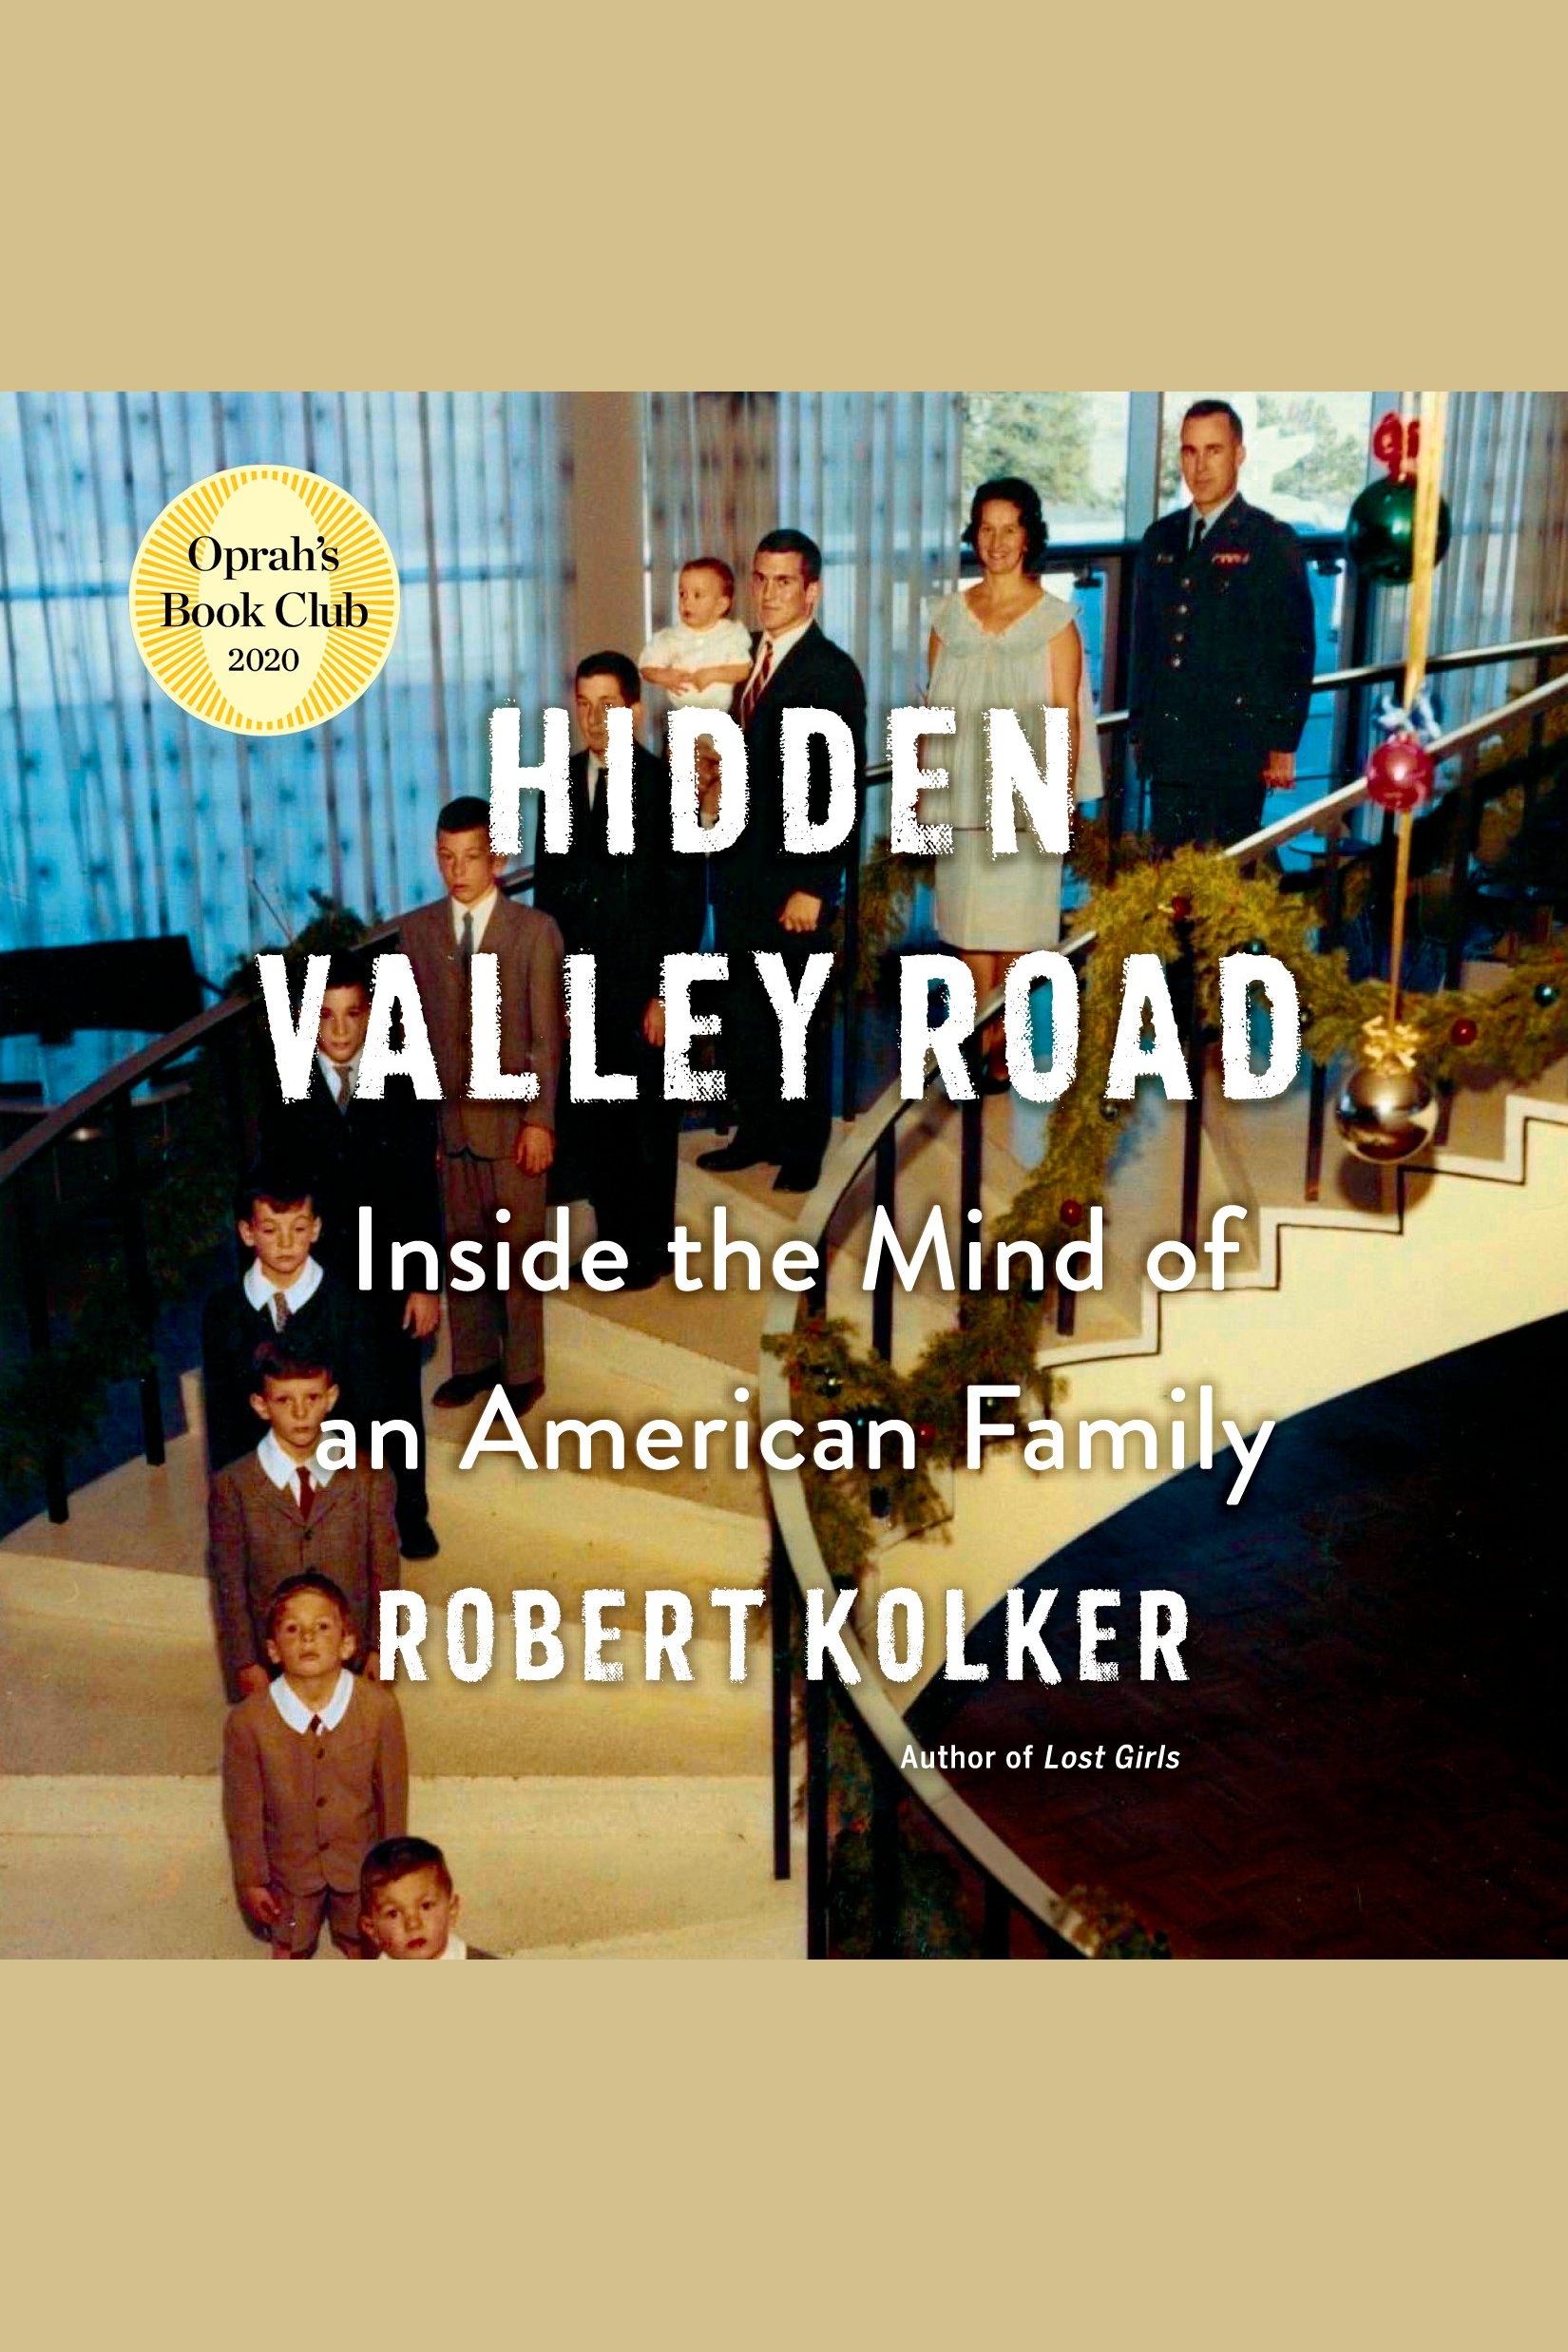 Cover Image of Hidden Valley Road